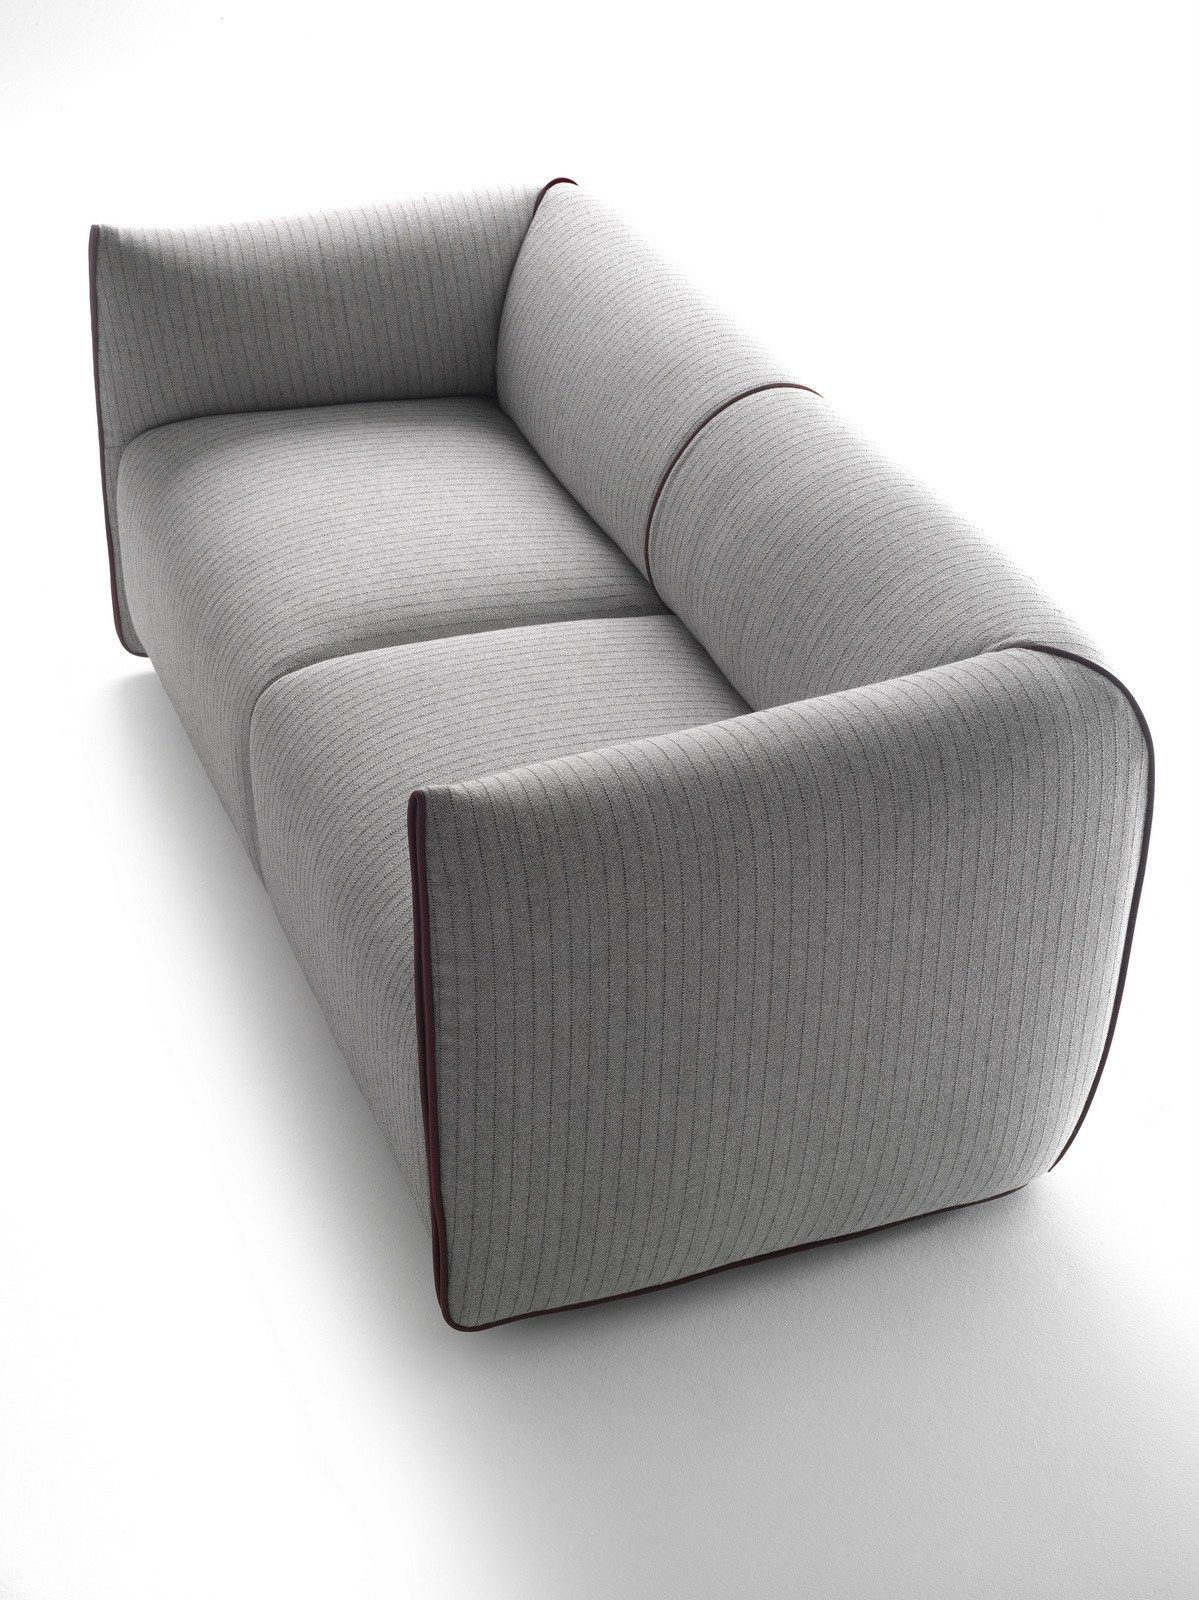 10 Fabric Sofas With Removable Covers Most Of The Amazing And Also Stunning Fabric Sofa Sofa Furniture Furniture